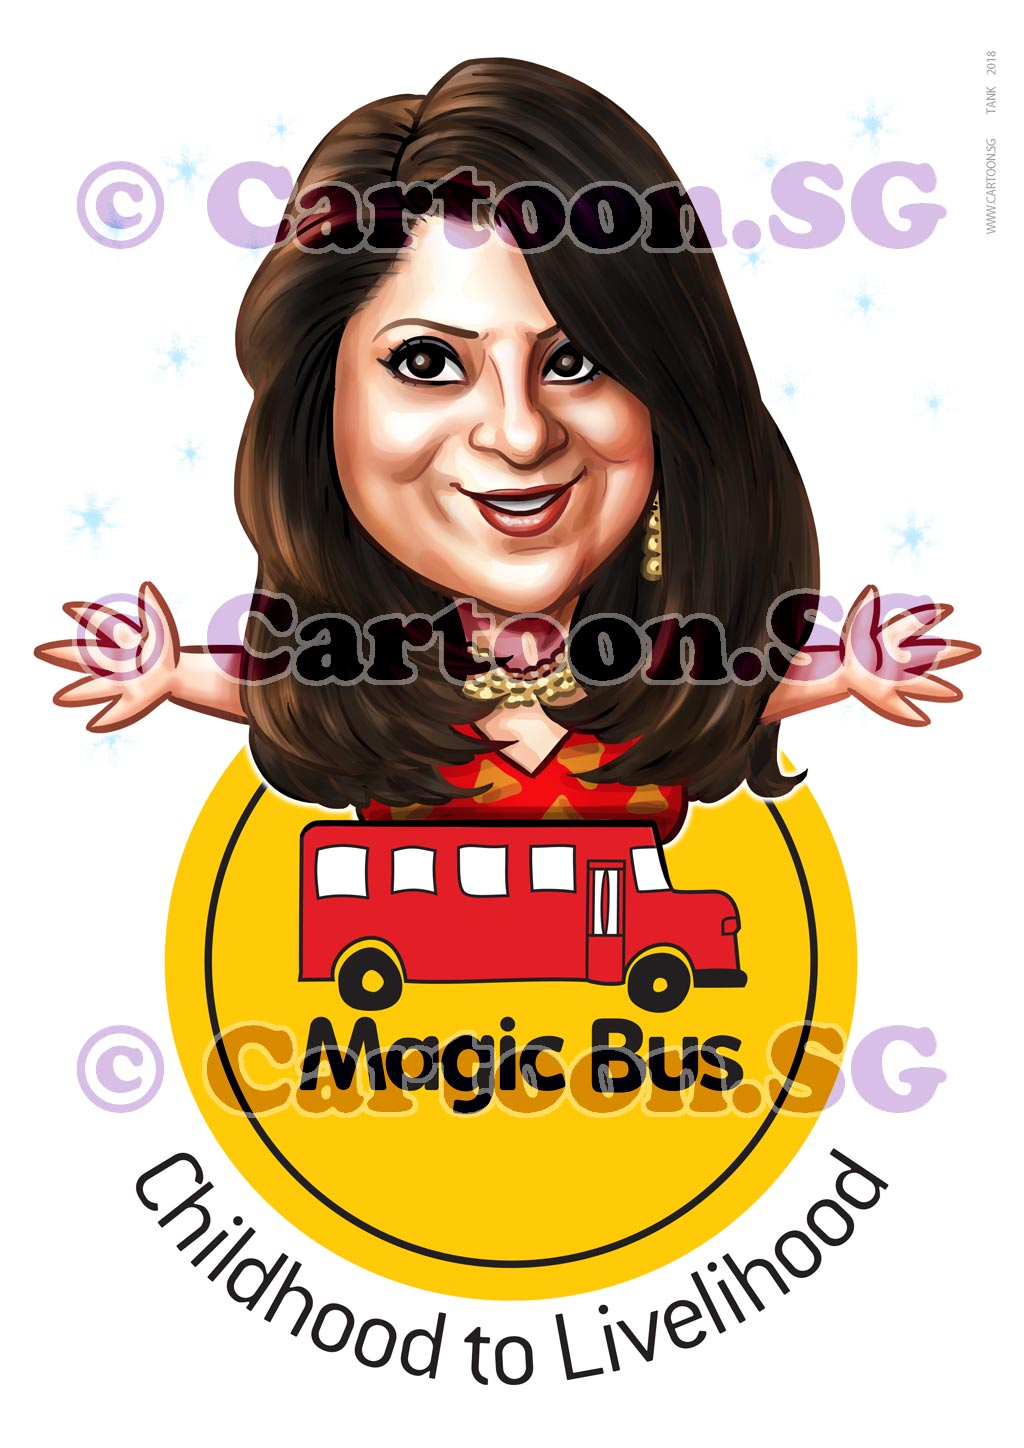 2018-02-21-Caricature-Singapore-digital-mugshot-magic-bus-logo-lady-cute-gift.jpg